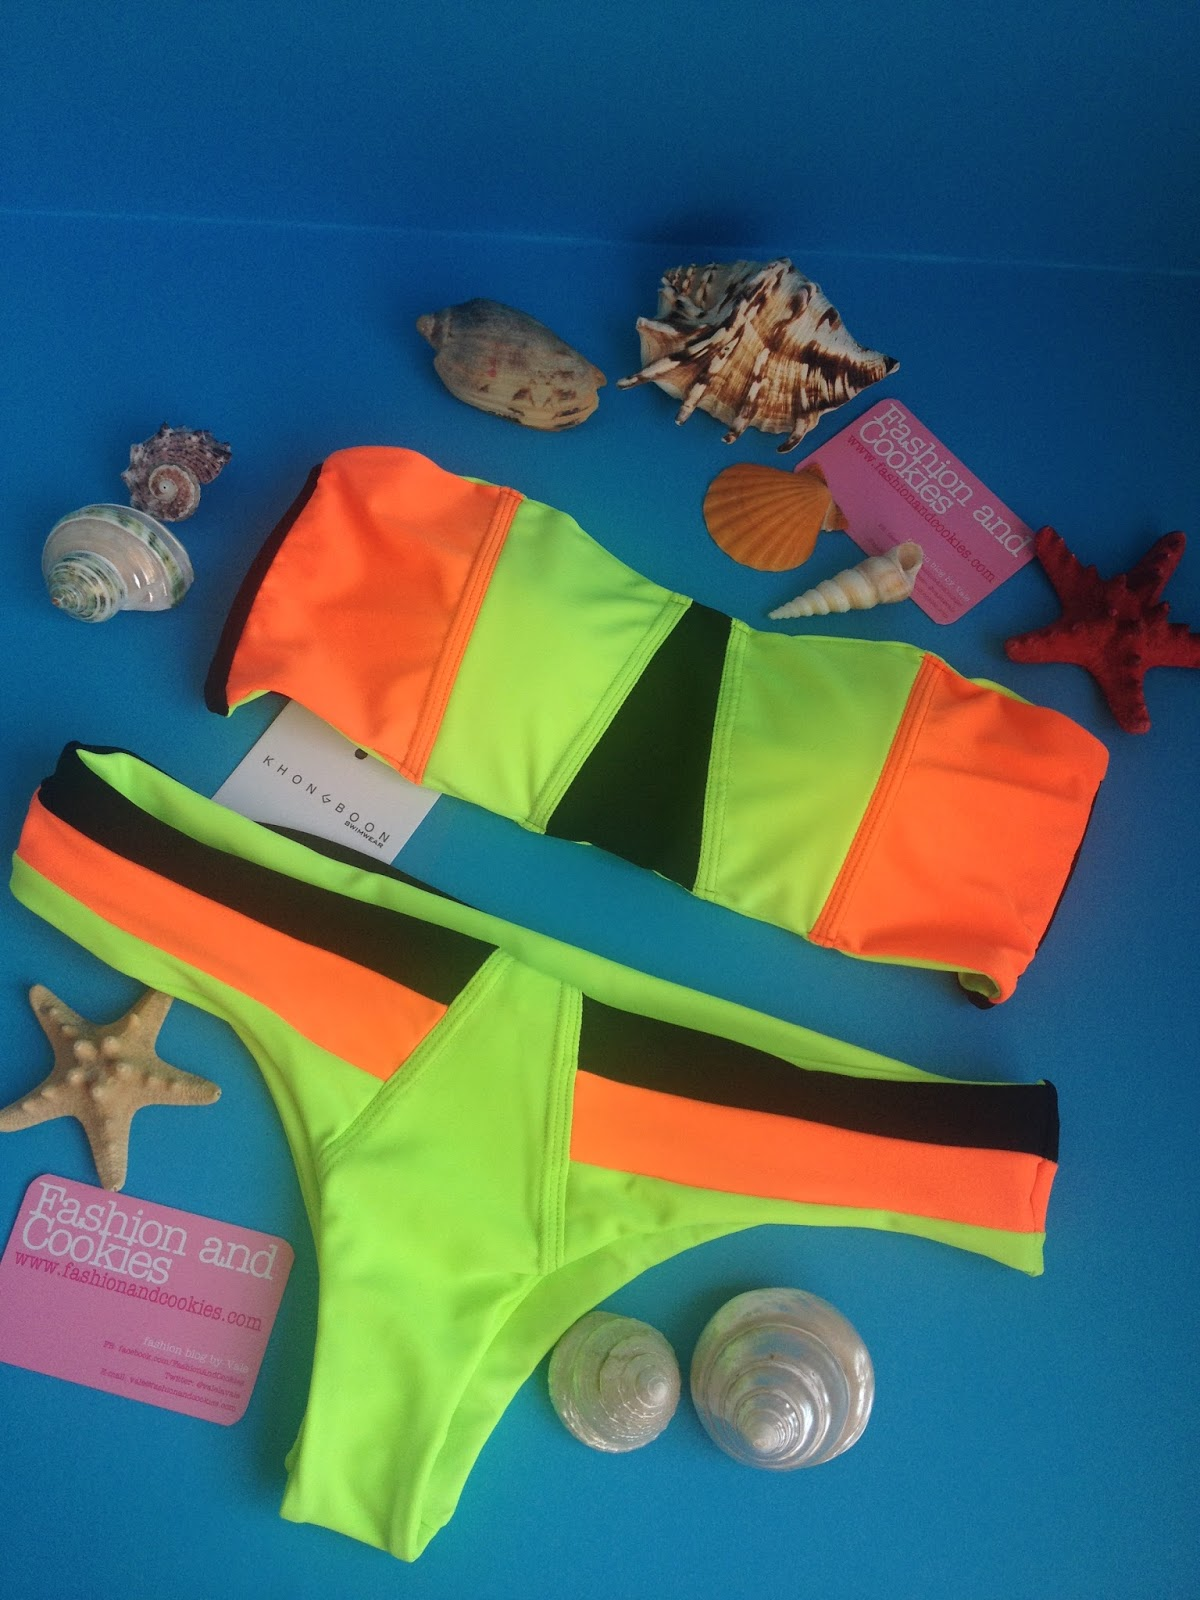 Khongboon swimwear Perugia bikini bandeau bikini on Fashion and Cookies fashion blog